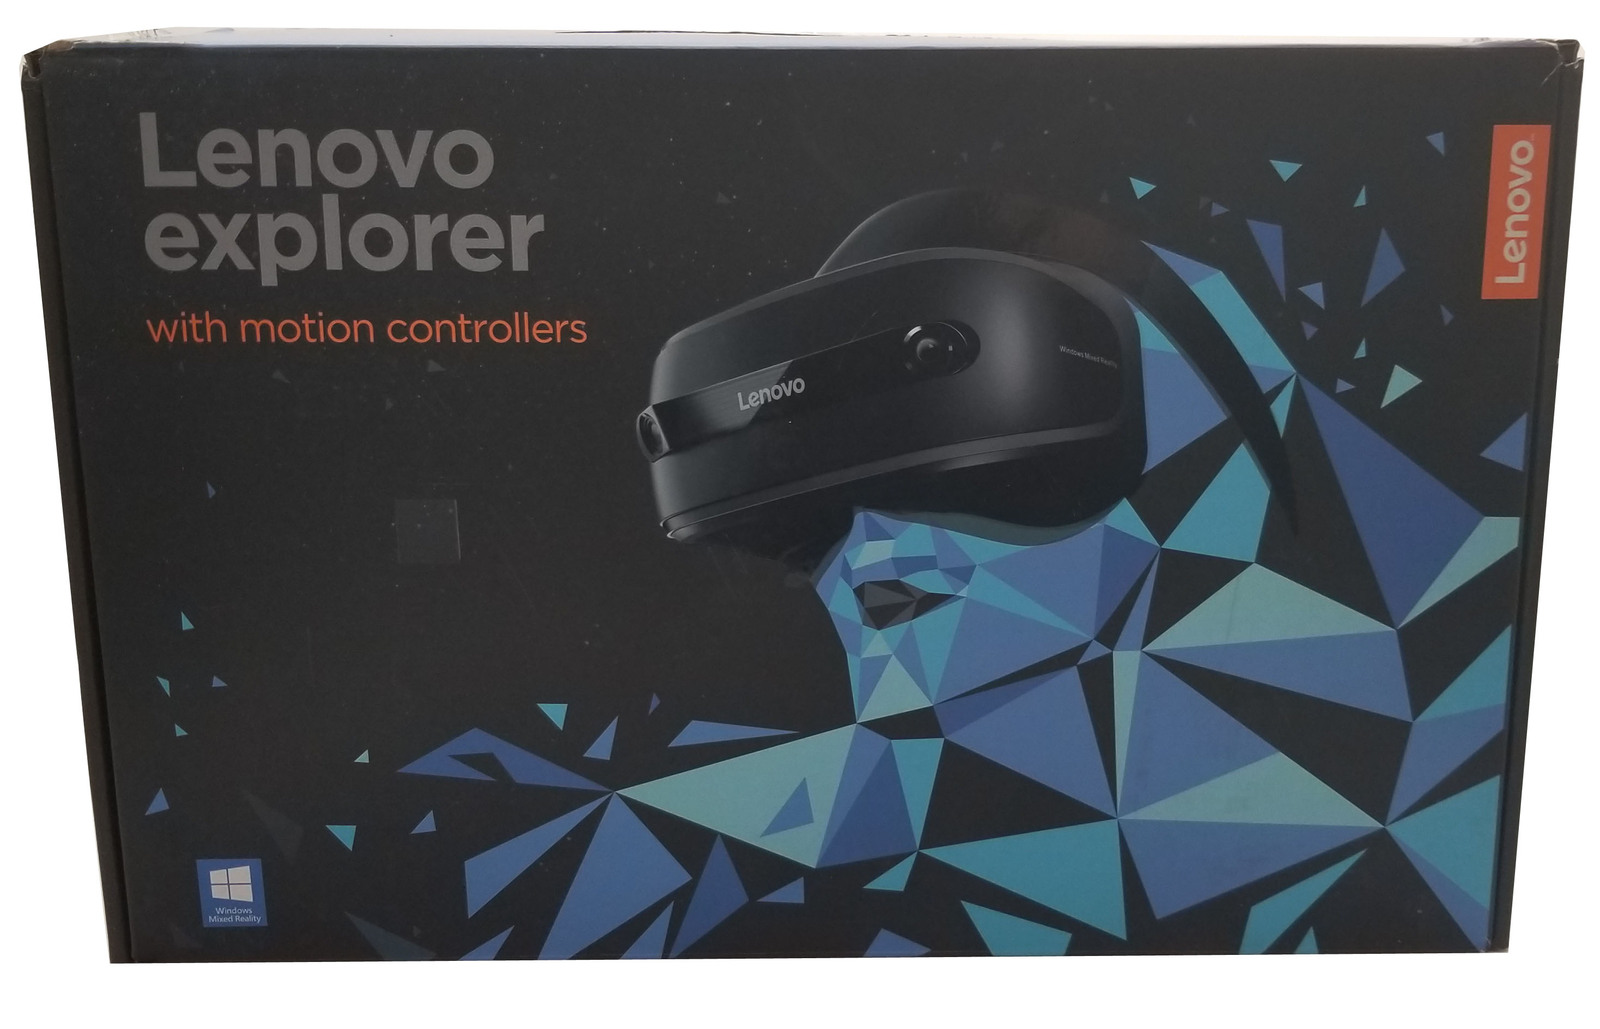 Lenovo Explorer 1440p Virtual Reality Headset With Motion Controllers Bin:SF